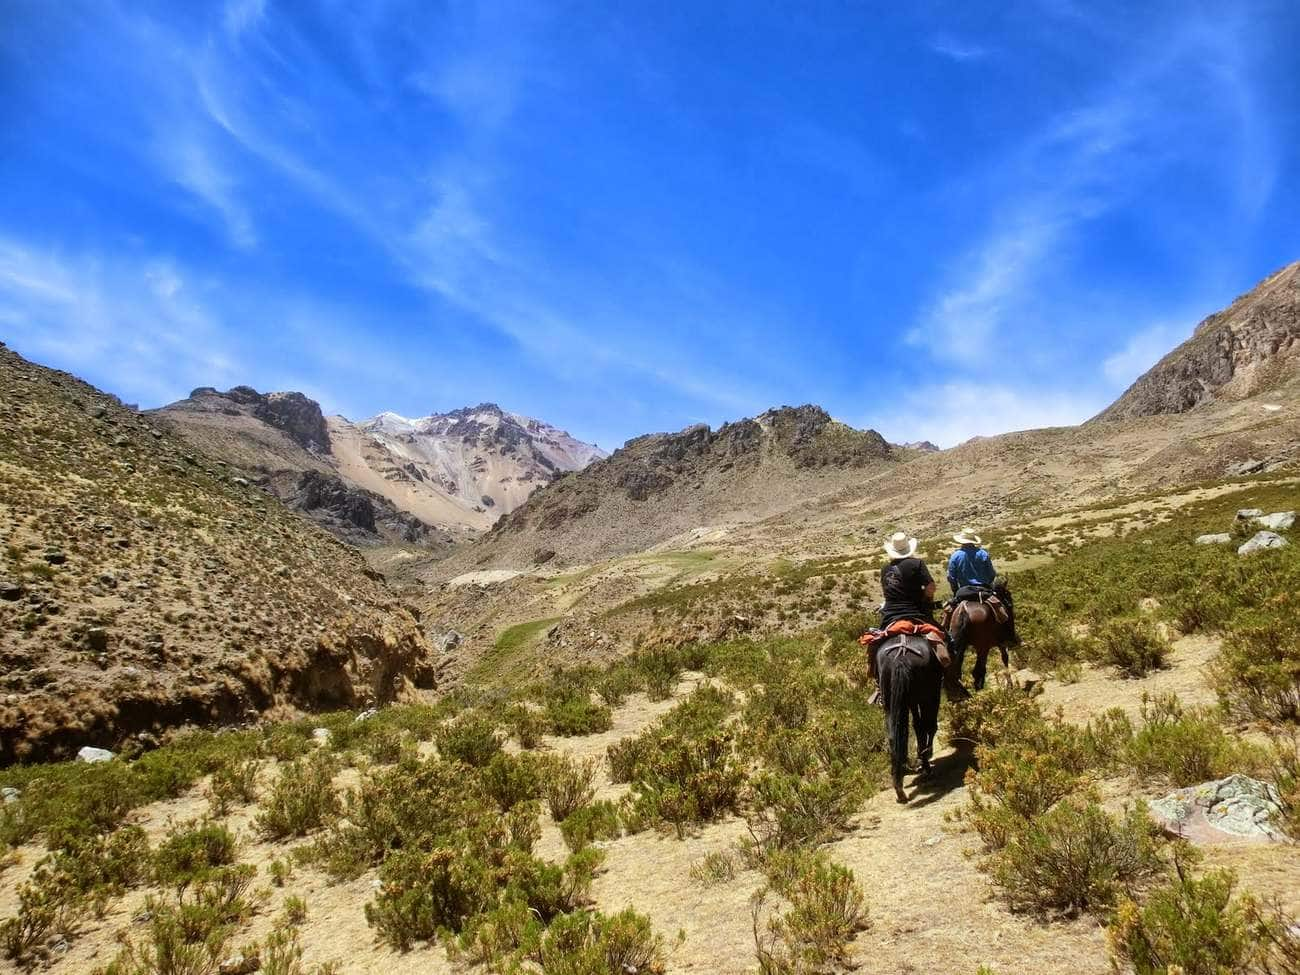 Horseback ride in Colca Canyon close to Arequipa in Peru